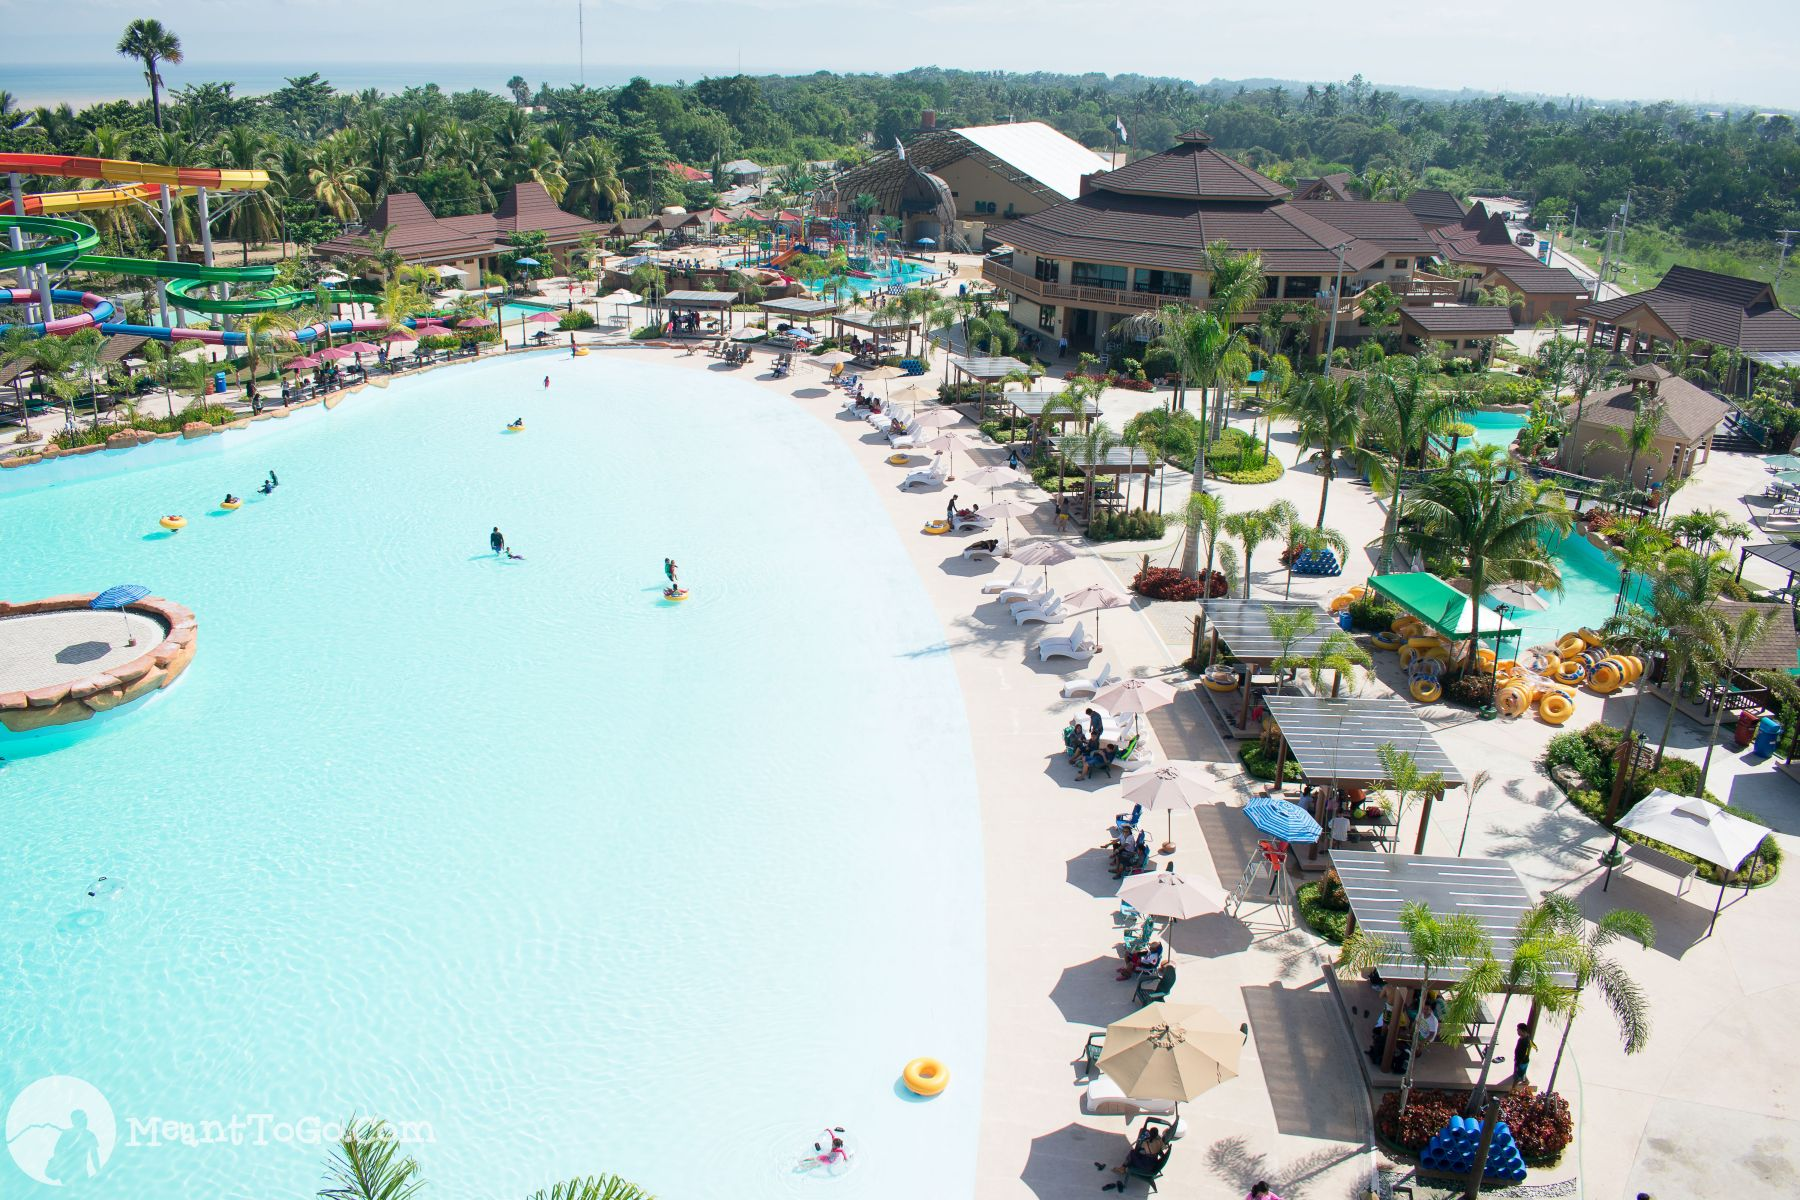 The Buccaneer Bay, Seven Seas Waterpark & Resort